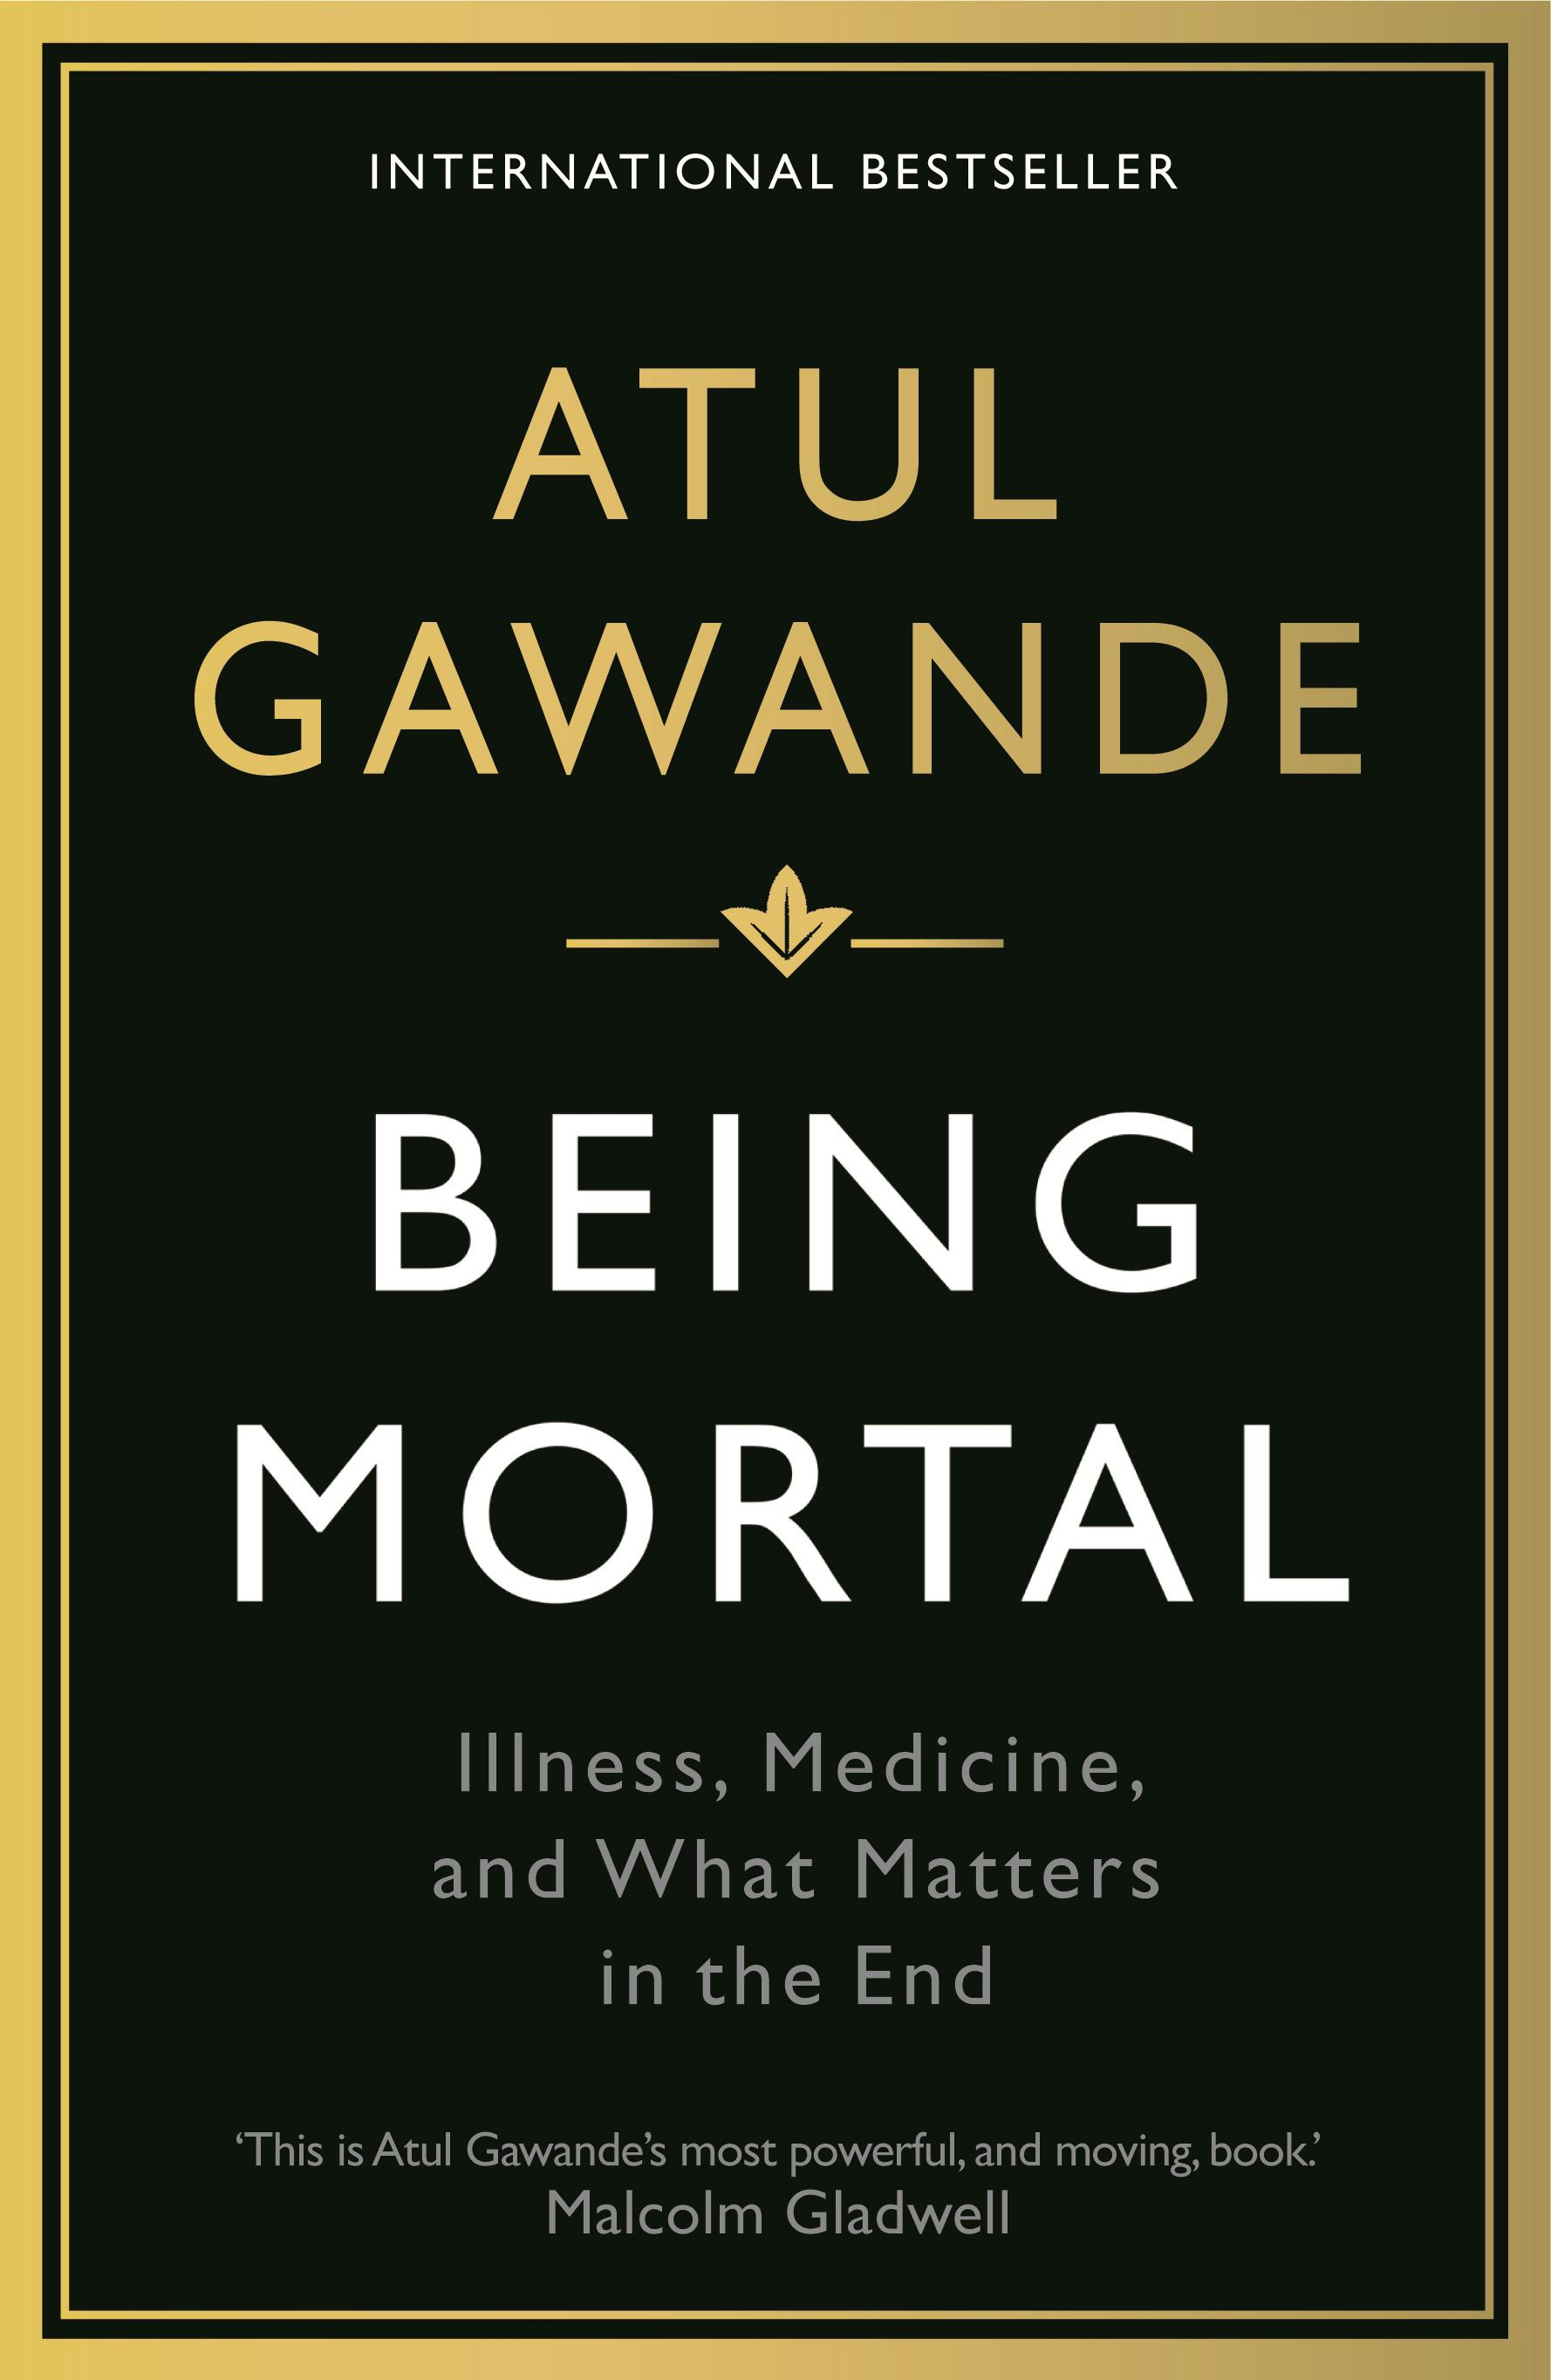 an analysis of old age and dying in the us being mortal by atul gawande The united states has a problem when it comes to conversations around death and dying, says dr atul gawande patients with life-threatening illnesses tend to focus on how to beat the steep odds against them, he says, without hearing from their doctors about how certain kinds of treatment might actually worsen their remaining time alive.